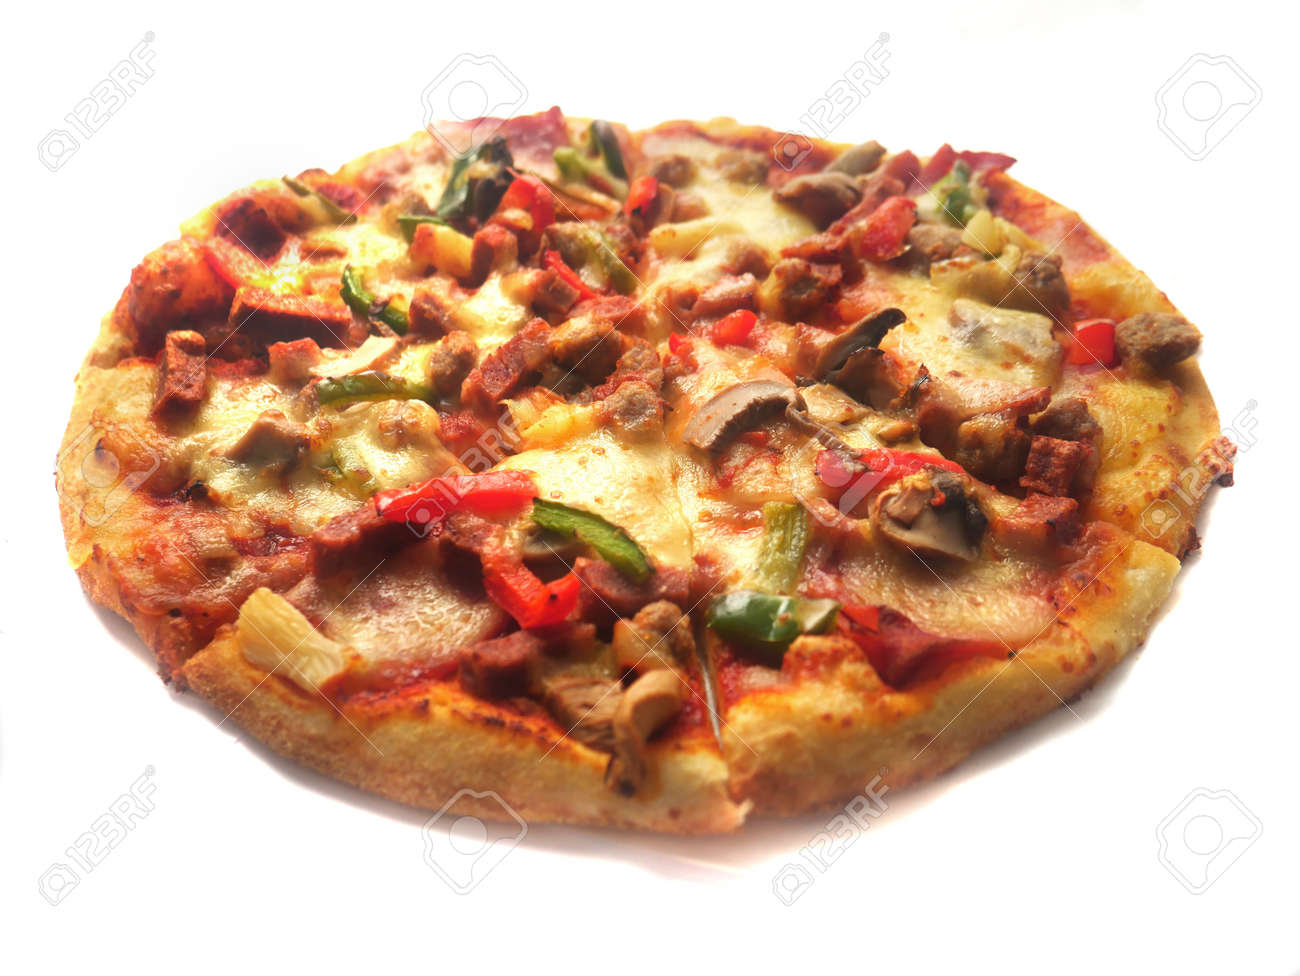 Close up image of Italian food pizza in round shape, topped with meat, ham, mushroom, veggies and cheese, isolated on white - 135681594